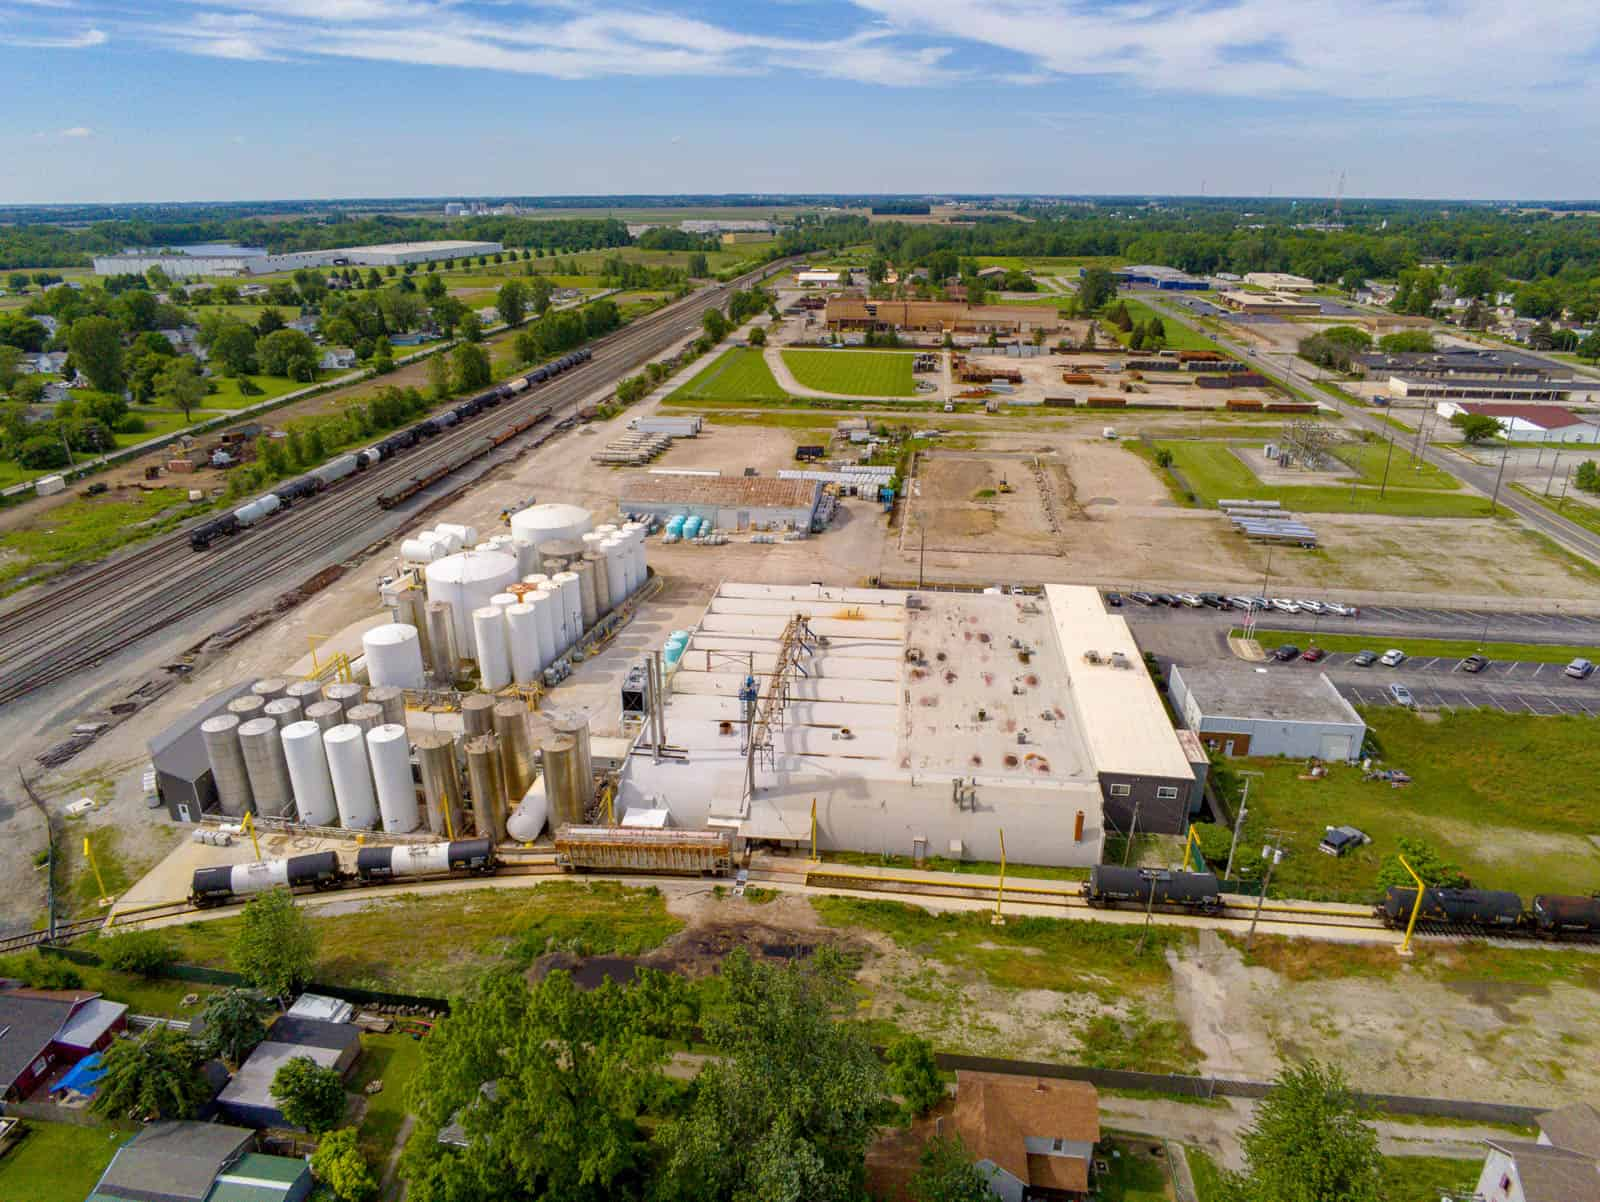 aerial drone photo of manufacturing plant in Marion, Ohio